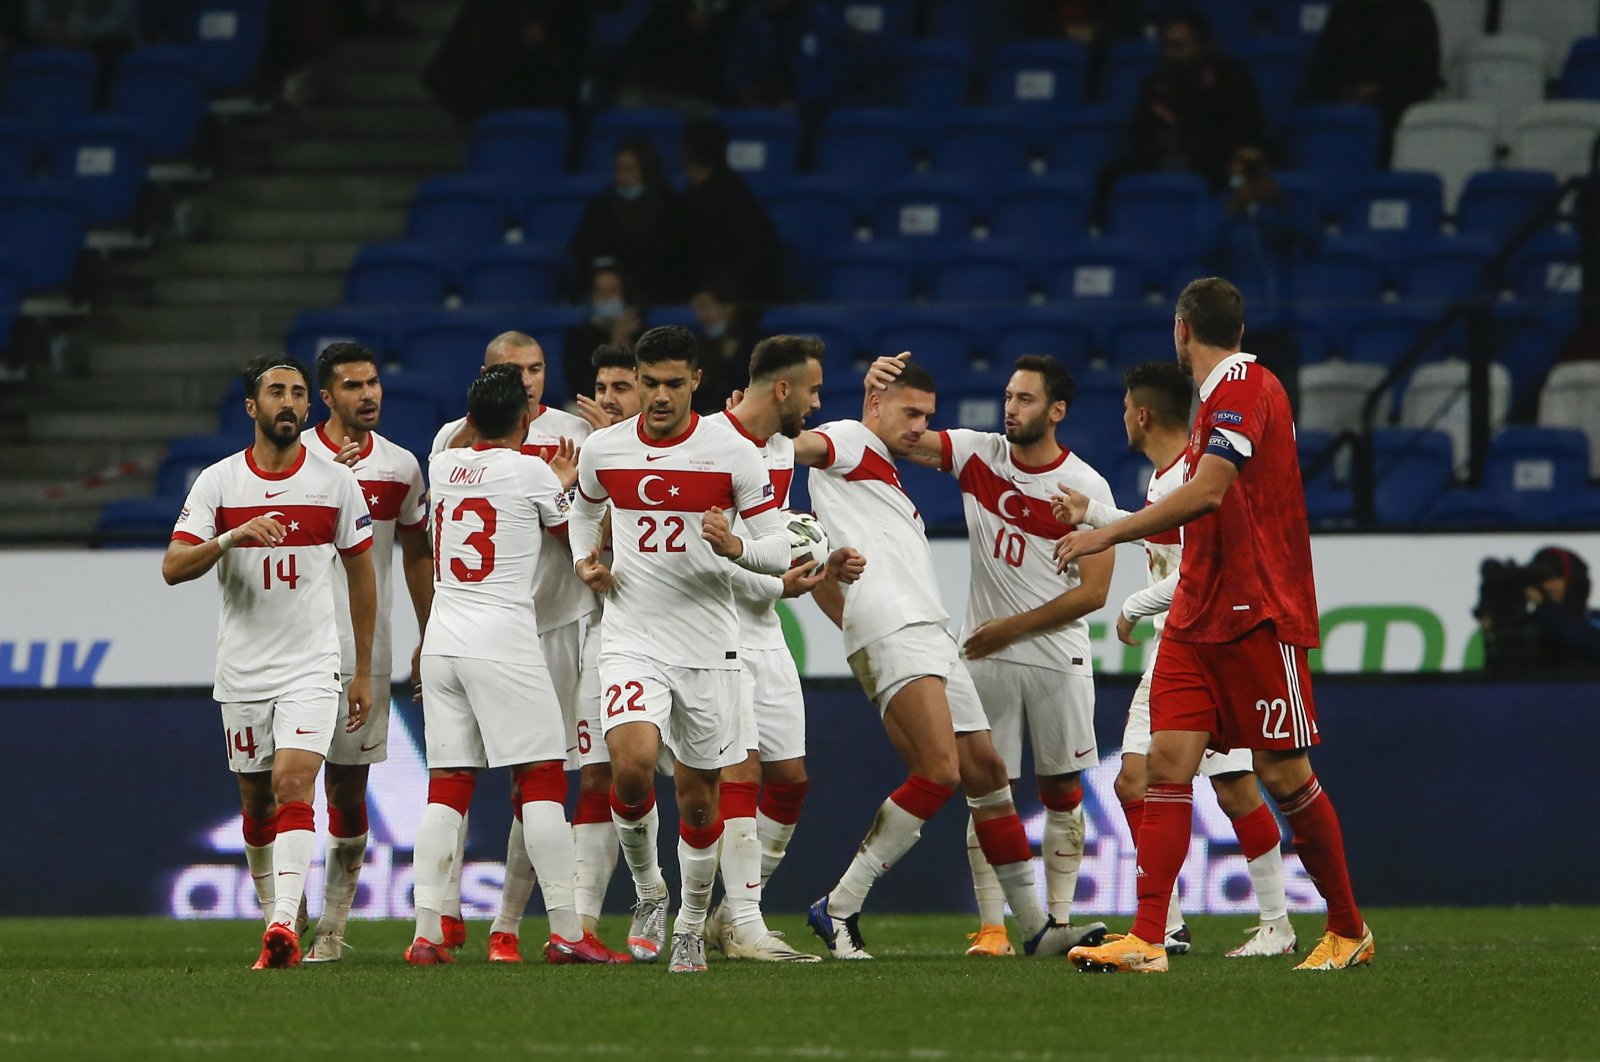 Turkish national football team celebrates scoring against Russia in a UEFA Nations League match at VTB Arena in Moscow, Russia, Oct. 11, 2020. (AA Photo)